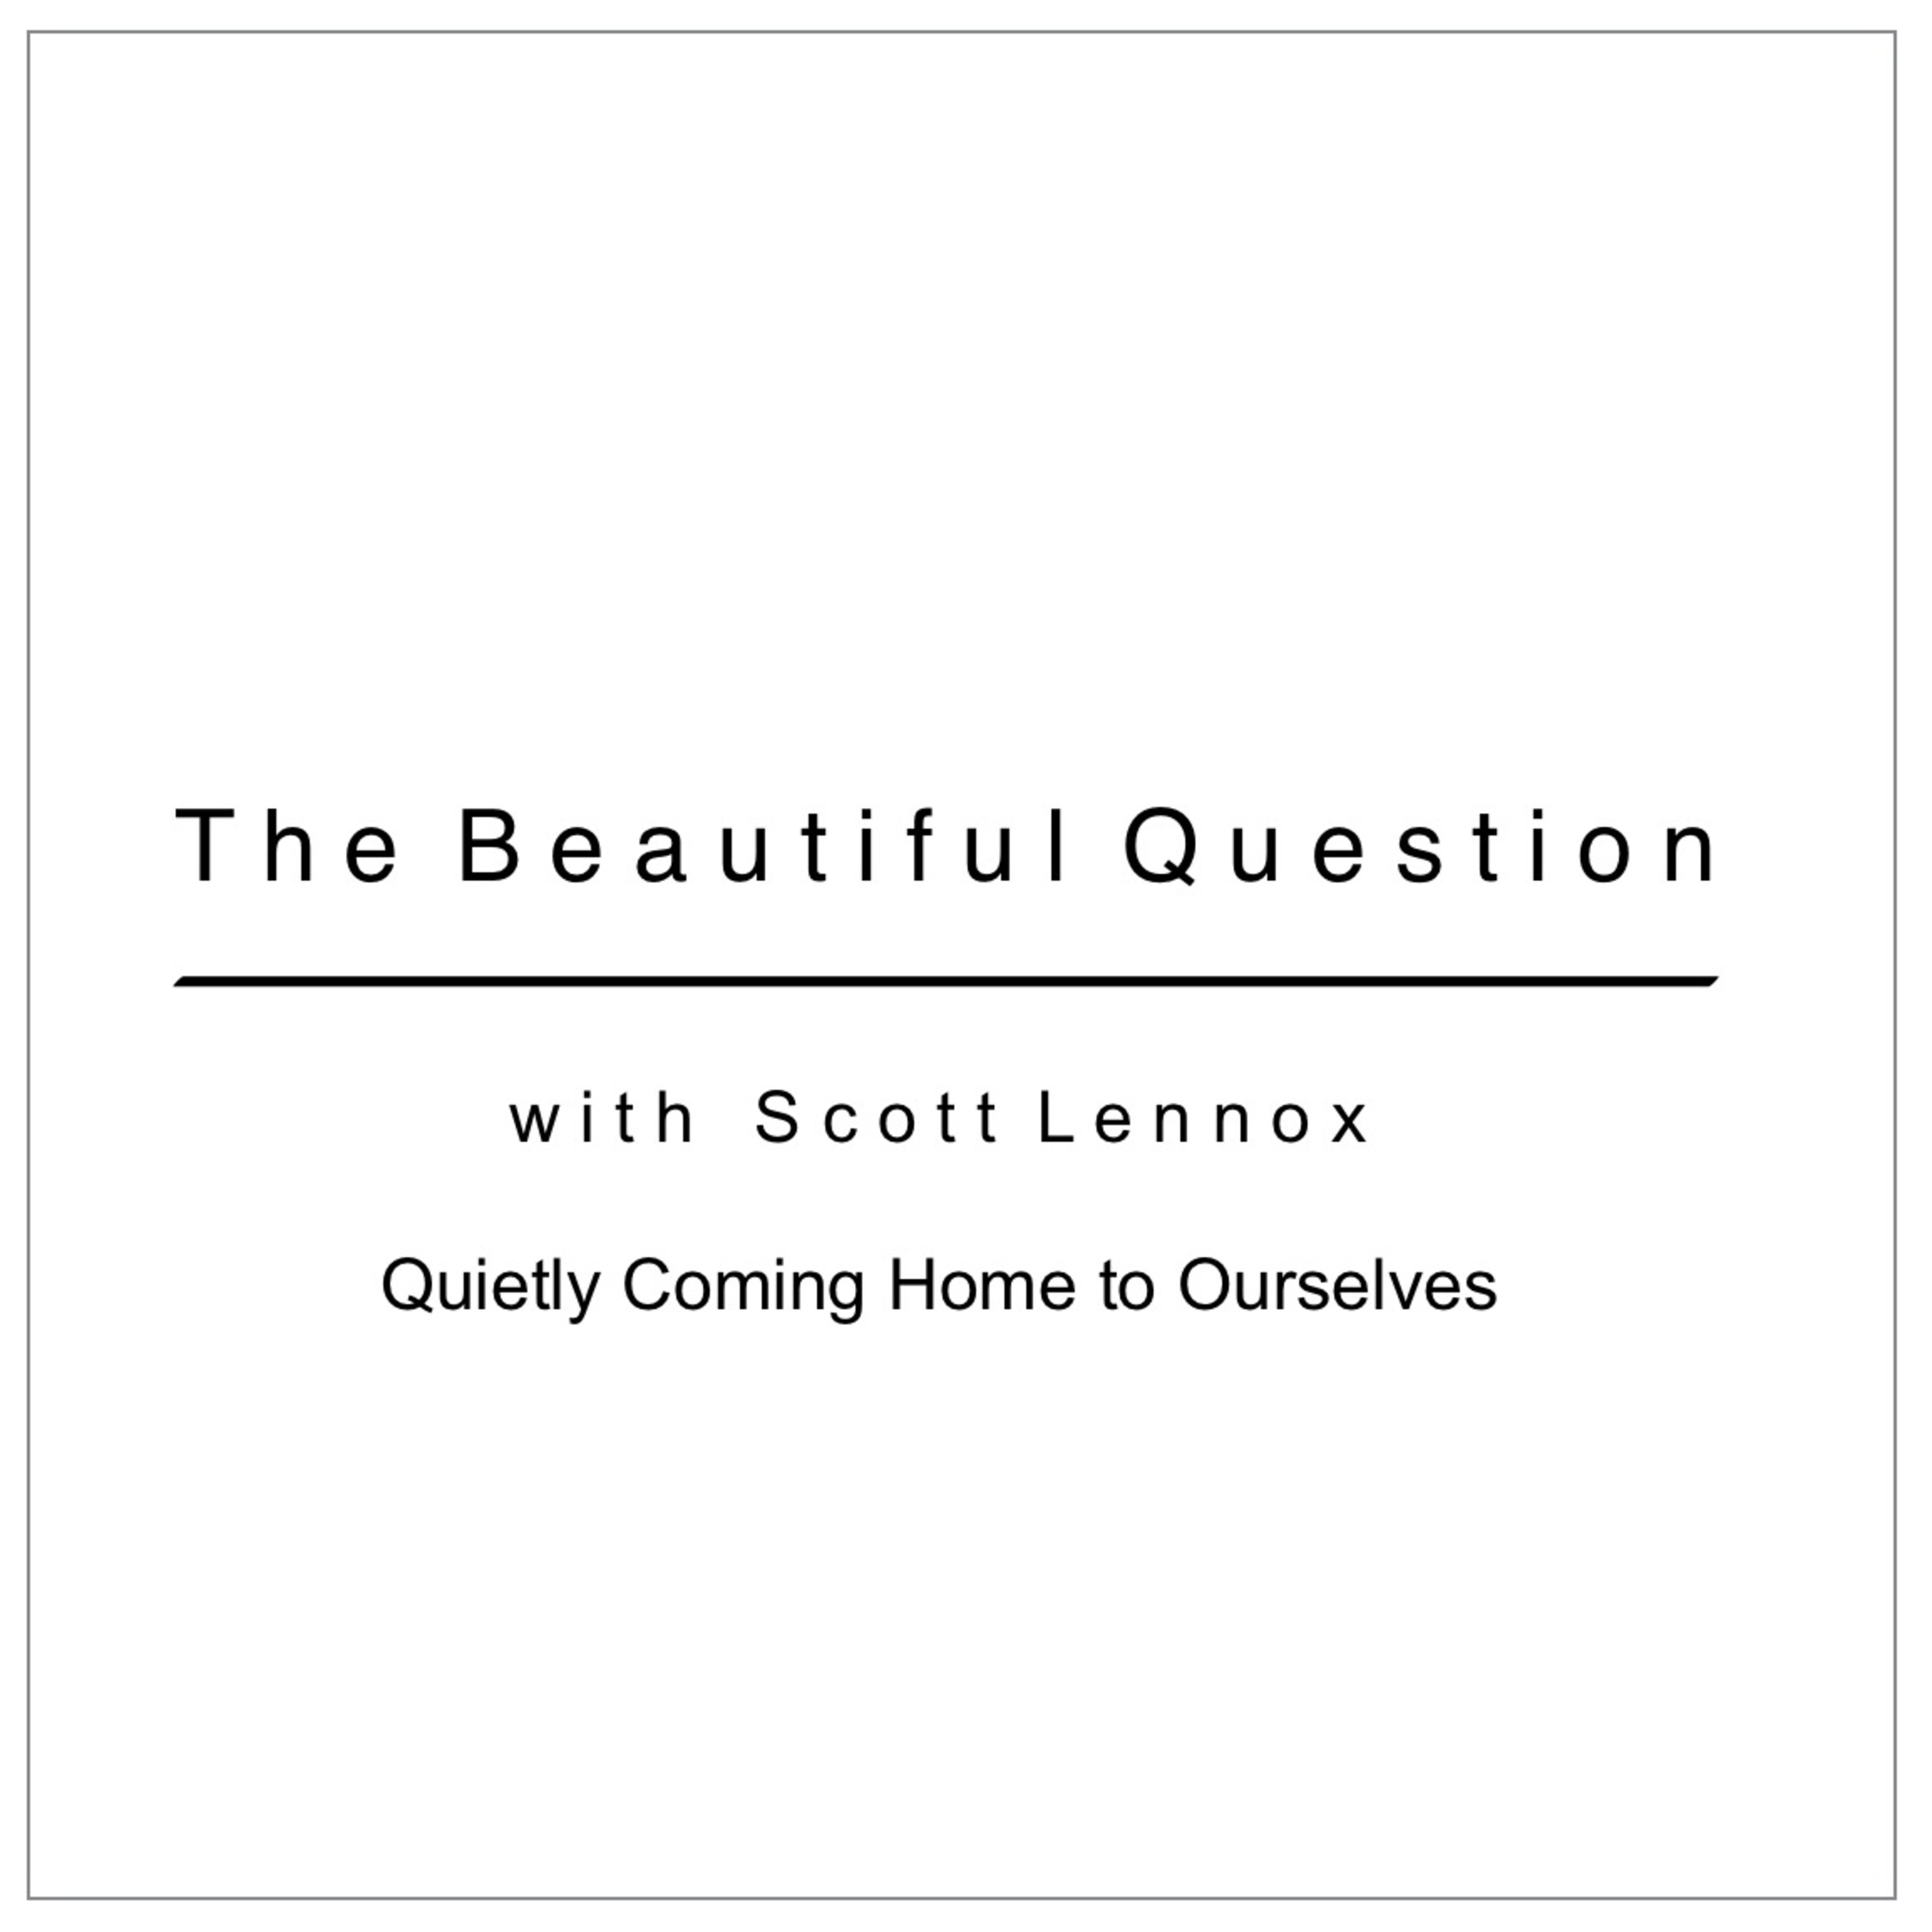 Quietly Coming Home to Ourselves